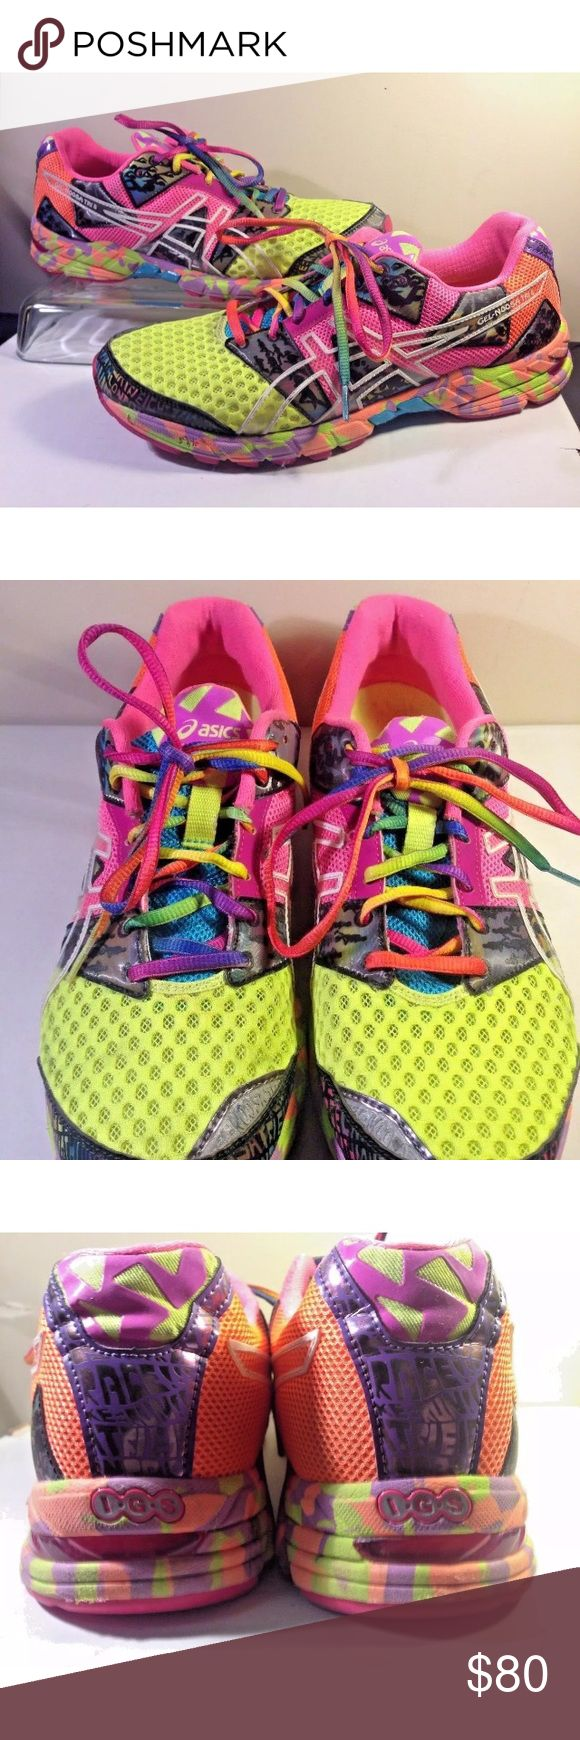 """ASICS Gel """"Noosa TRI 8"""" Neon Running Shoes T356N ASICS Gel """"Noosa TRI 8"""" Neon Green Multi-Color Women Running Shoes T356N Size 11 EUC  Excellent condition.  Worn once, but were not the right size for owner.  Pre-owned Dr. Scholl's active insoles included.  These cost $20 new.  Altogether, the shoes and the insoles originally cost ~$150.  These are really great running shoes!  No rips, holes, tears, or smells.  Size 11.  Feature upper mesh upper for breathability, lightweight and quick…"""